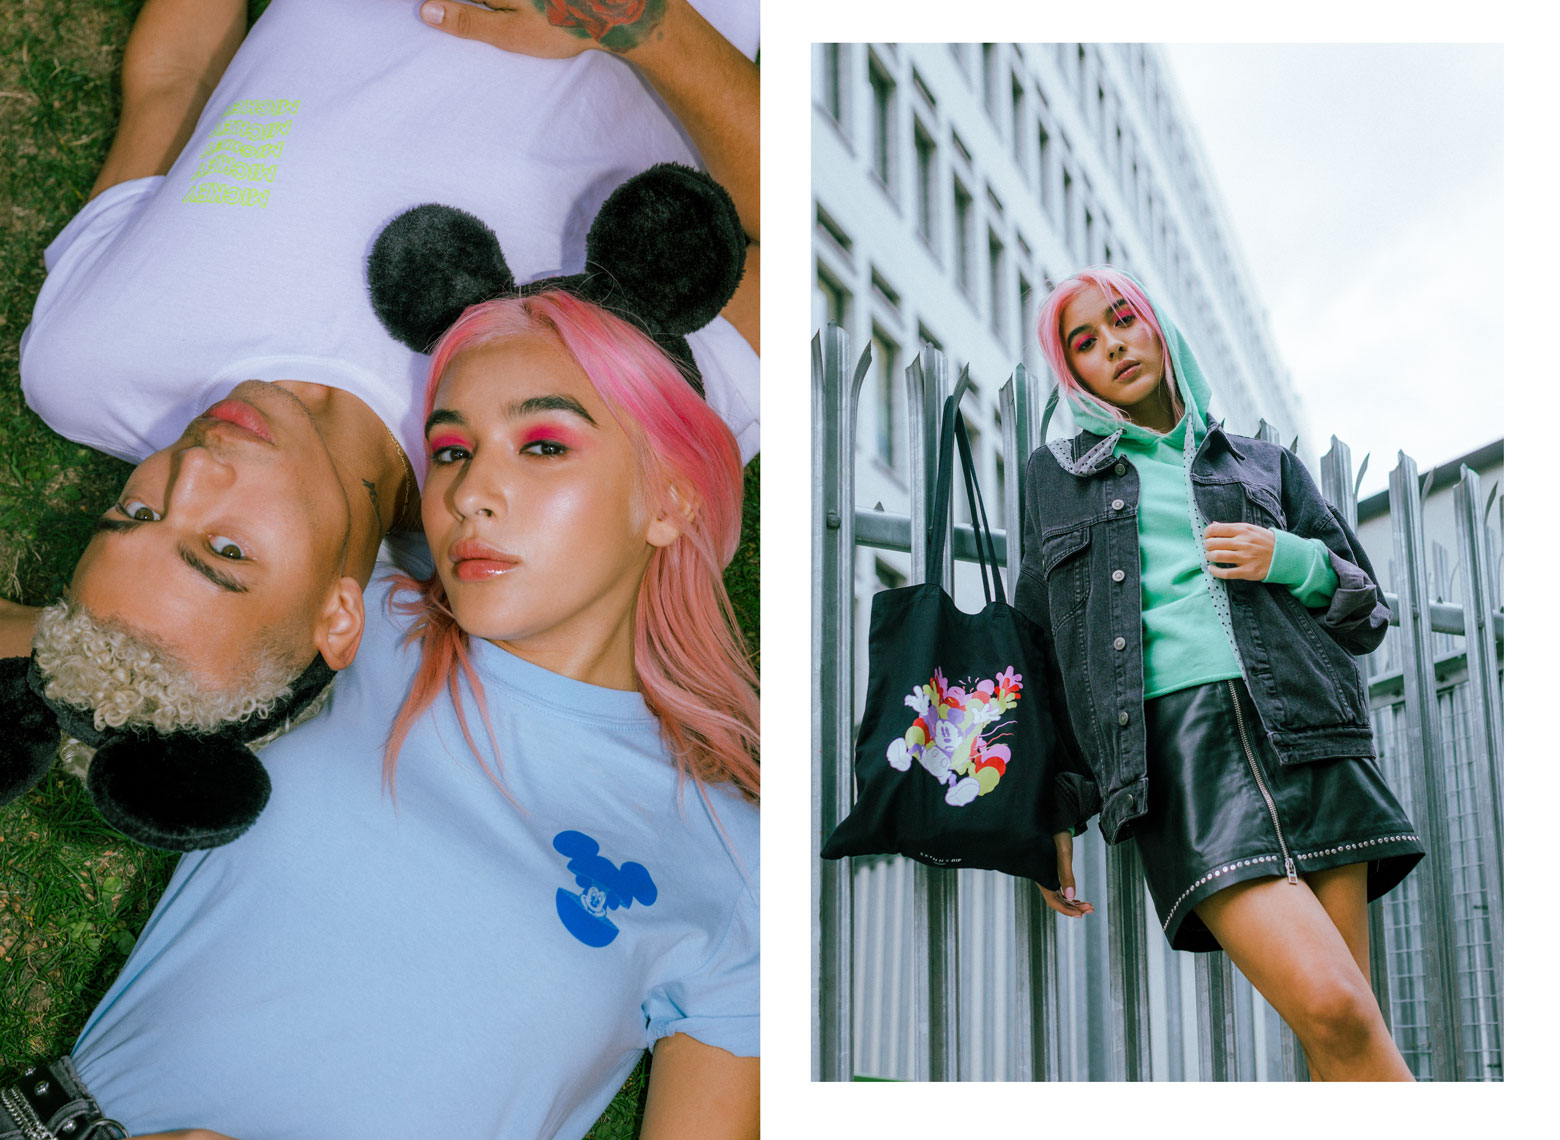 issie-gibbons-fashion-stylist-skinnydip-disney-campaign-mickey-mouse-grunge